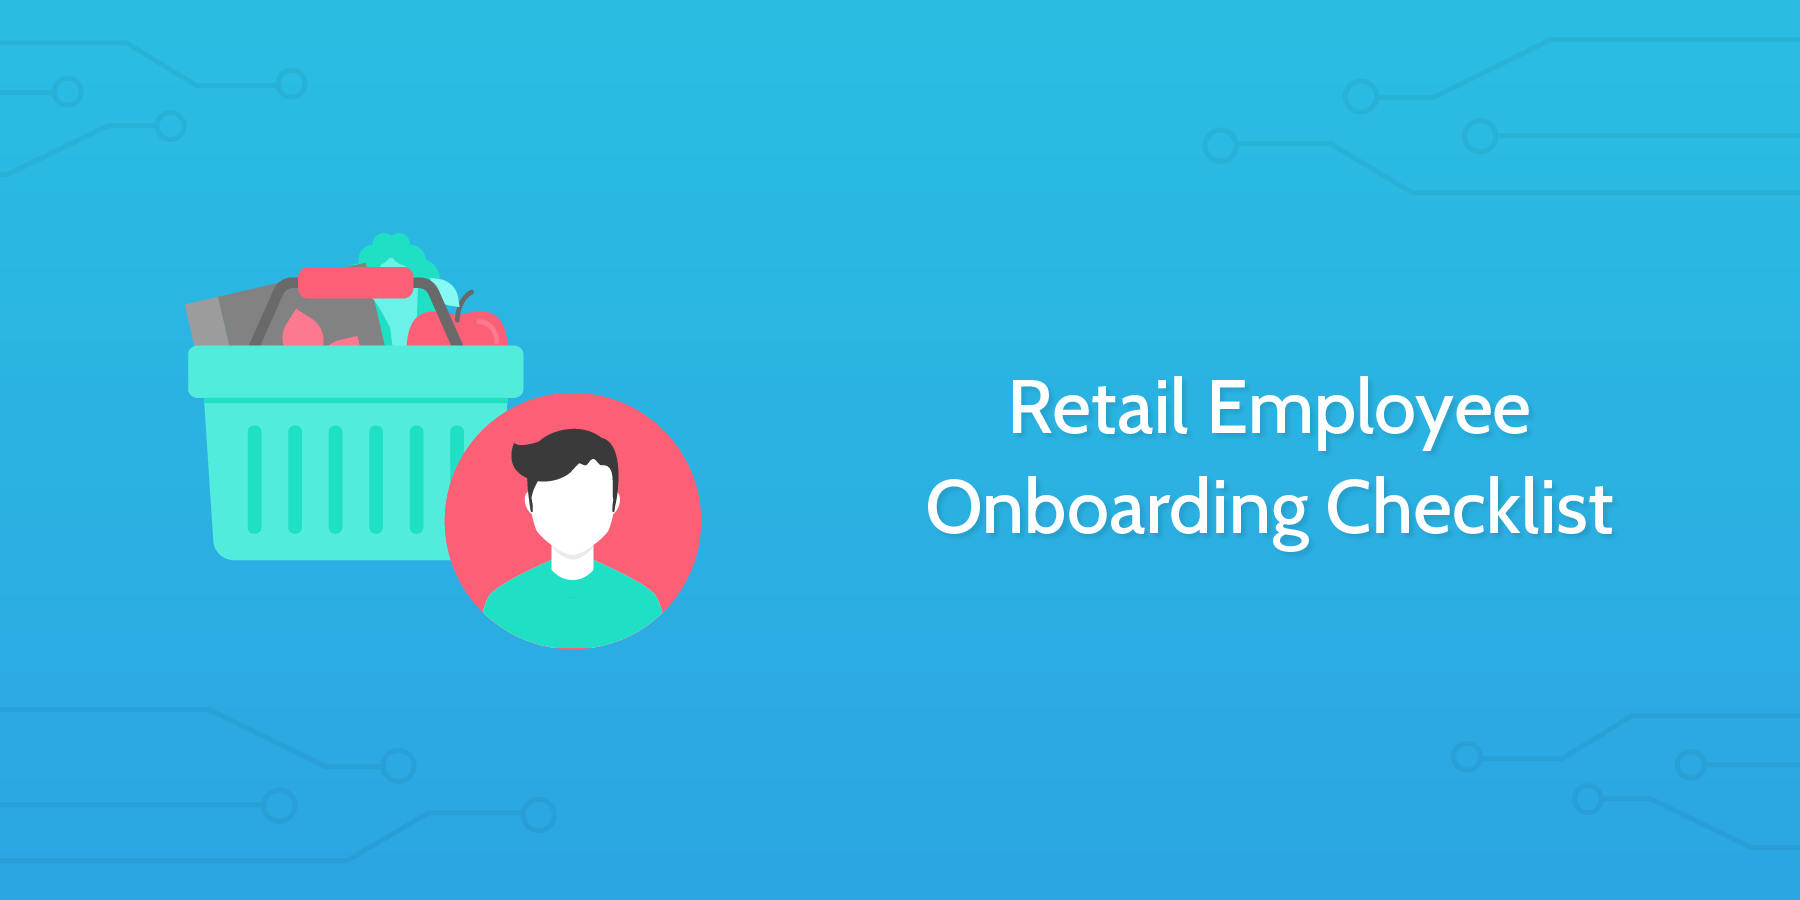 The importance of retail employee onboarding